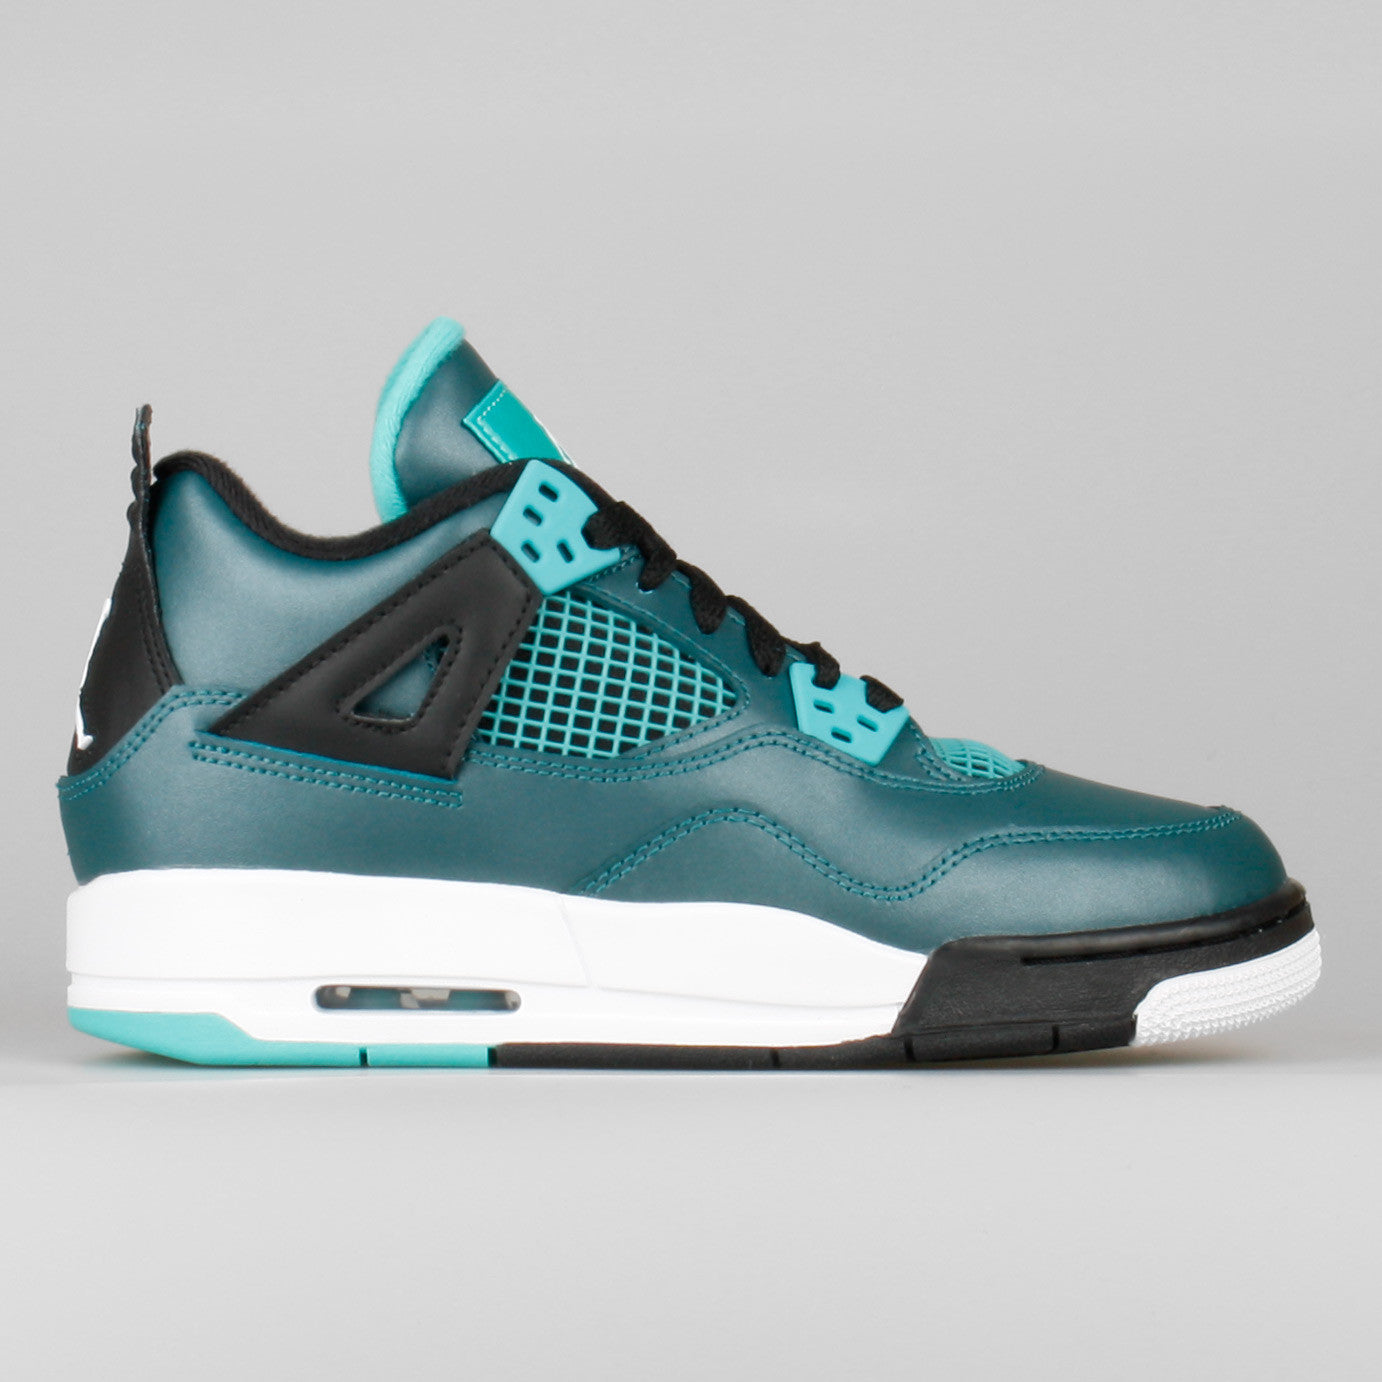 Nike Air Jordan 4 Retro 30th BG (GS) Teal (705330-330)  3bf639c9b